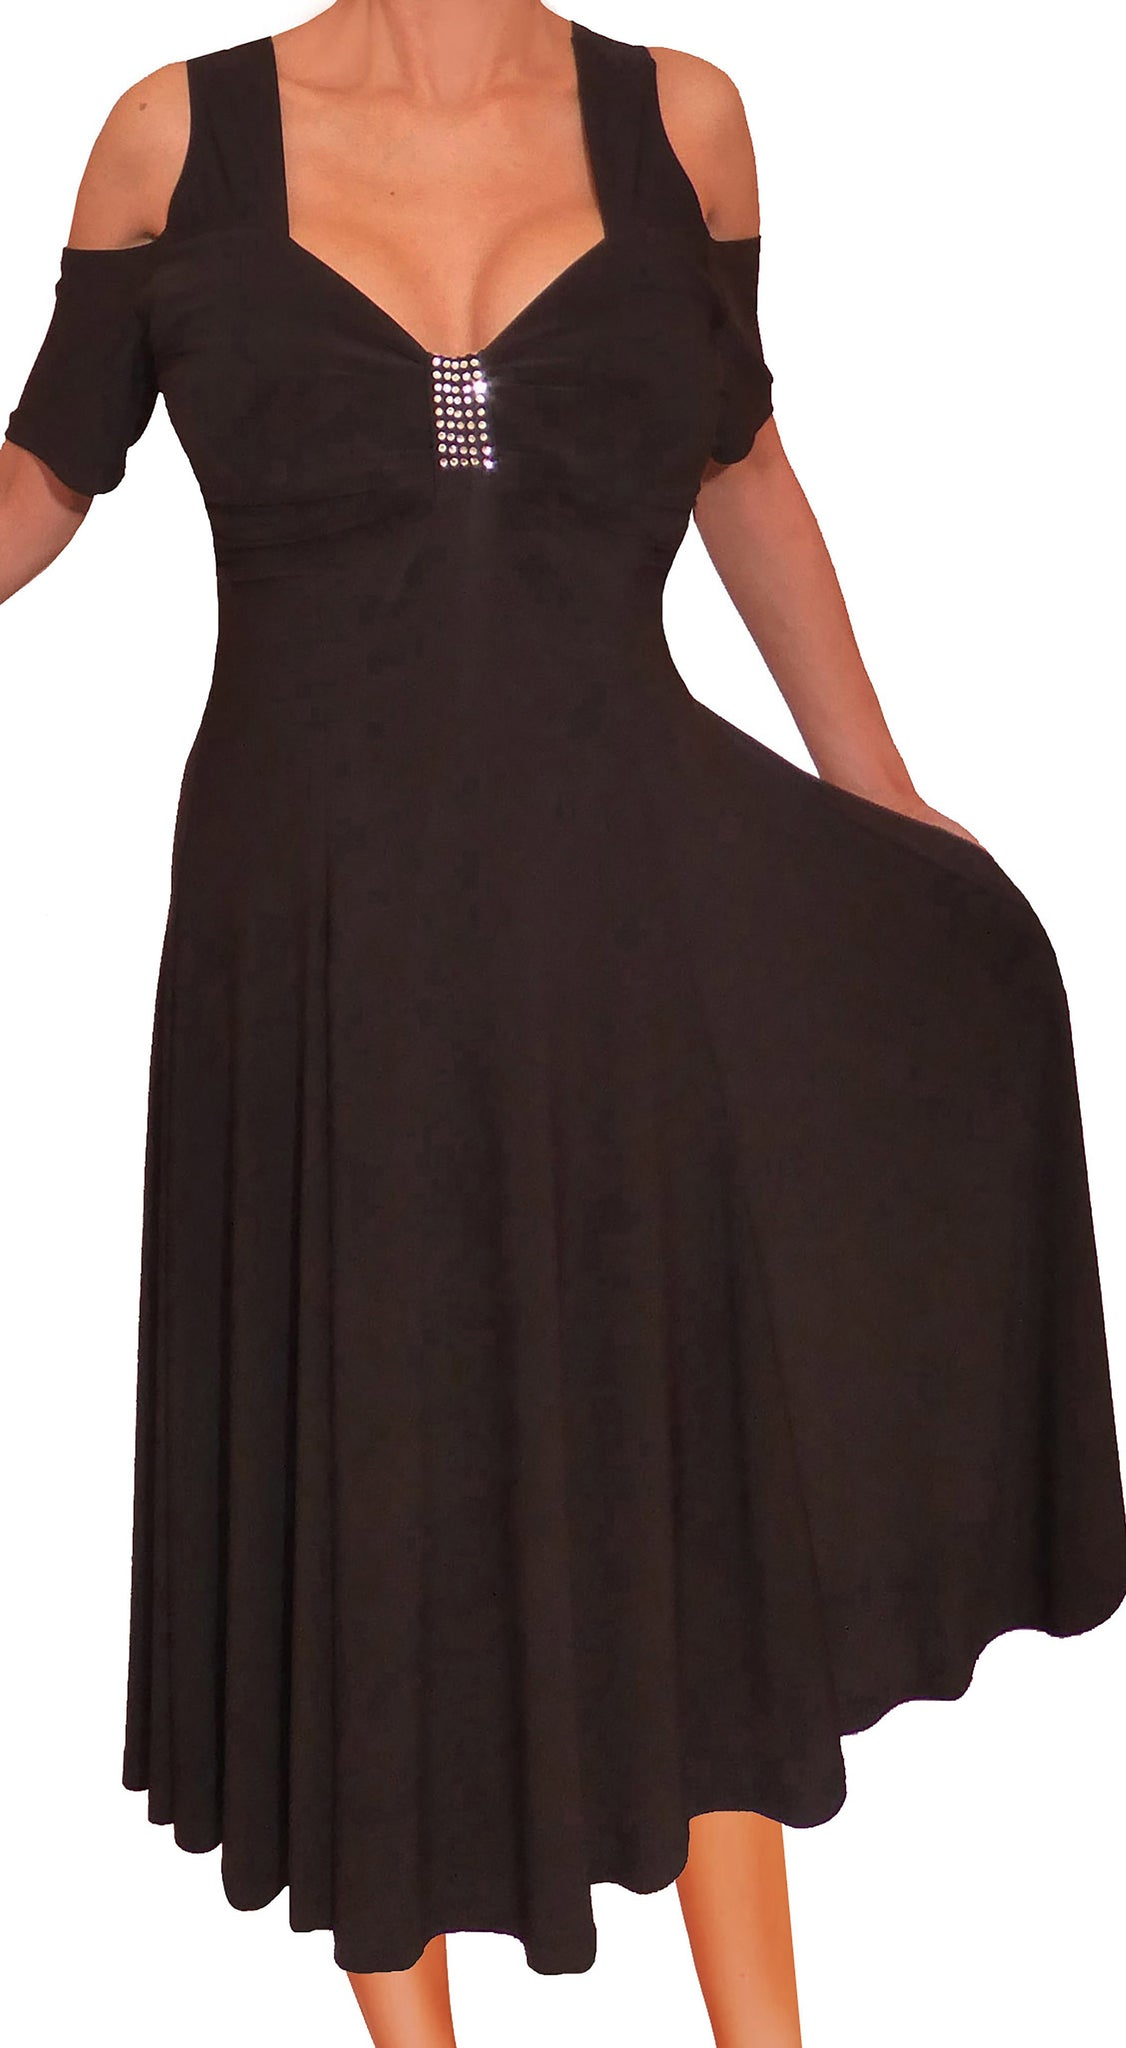 Plus Size Dress | Black Swing Dress | Made In USA | Funfash